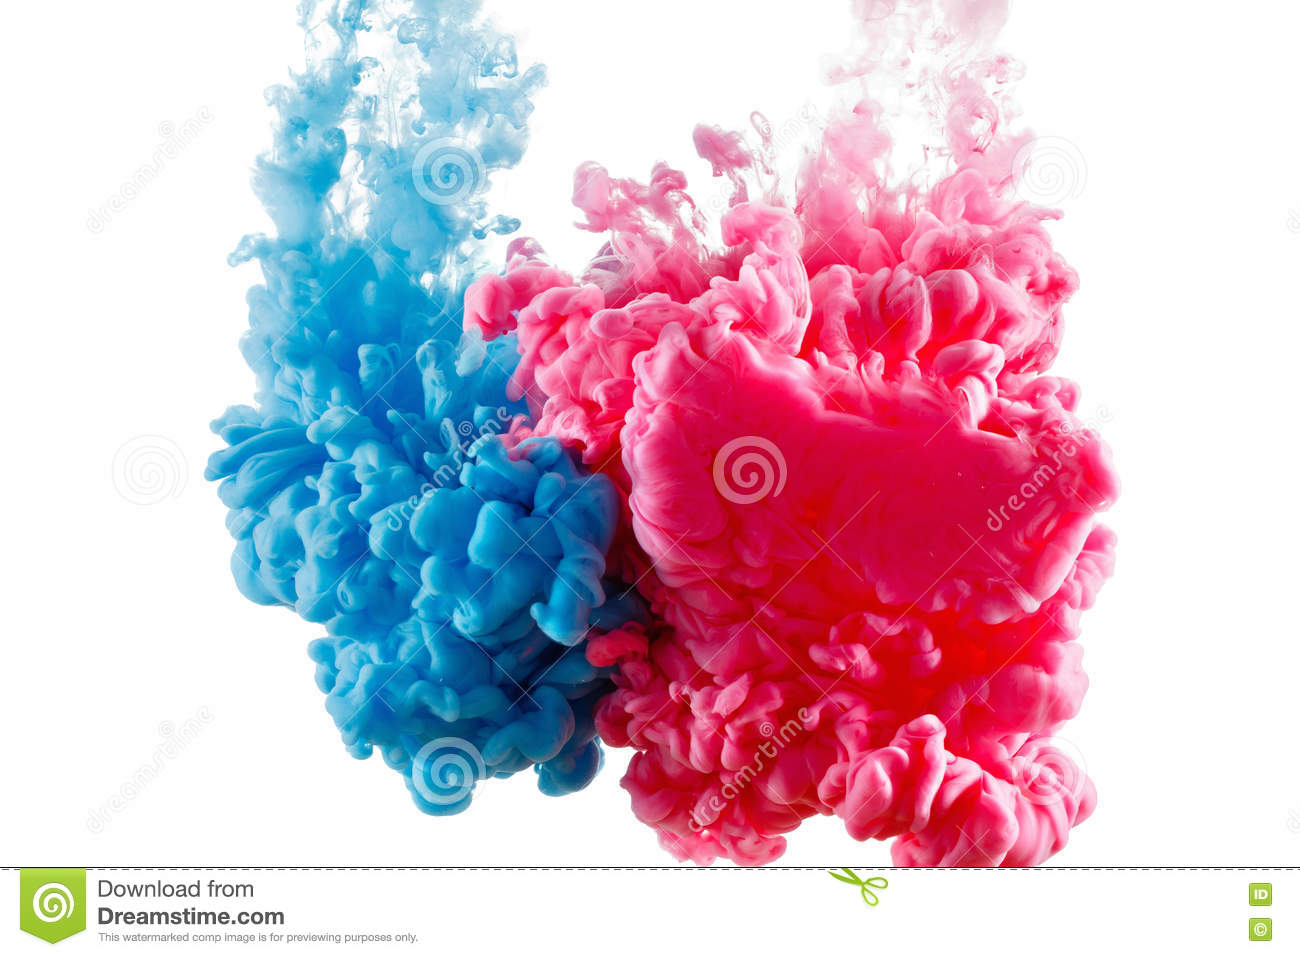 Download Color Ink Paint In Water, Photographed Motion, Isolated On White. Stock Image - Image of liquid, photography: 78242201